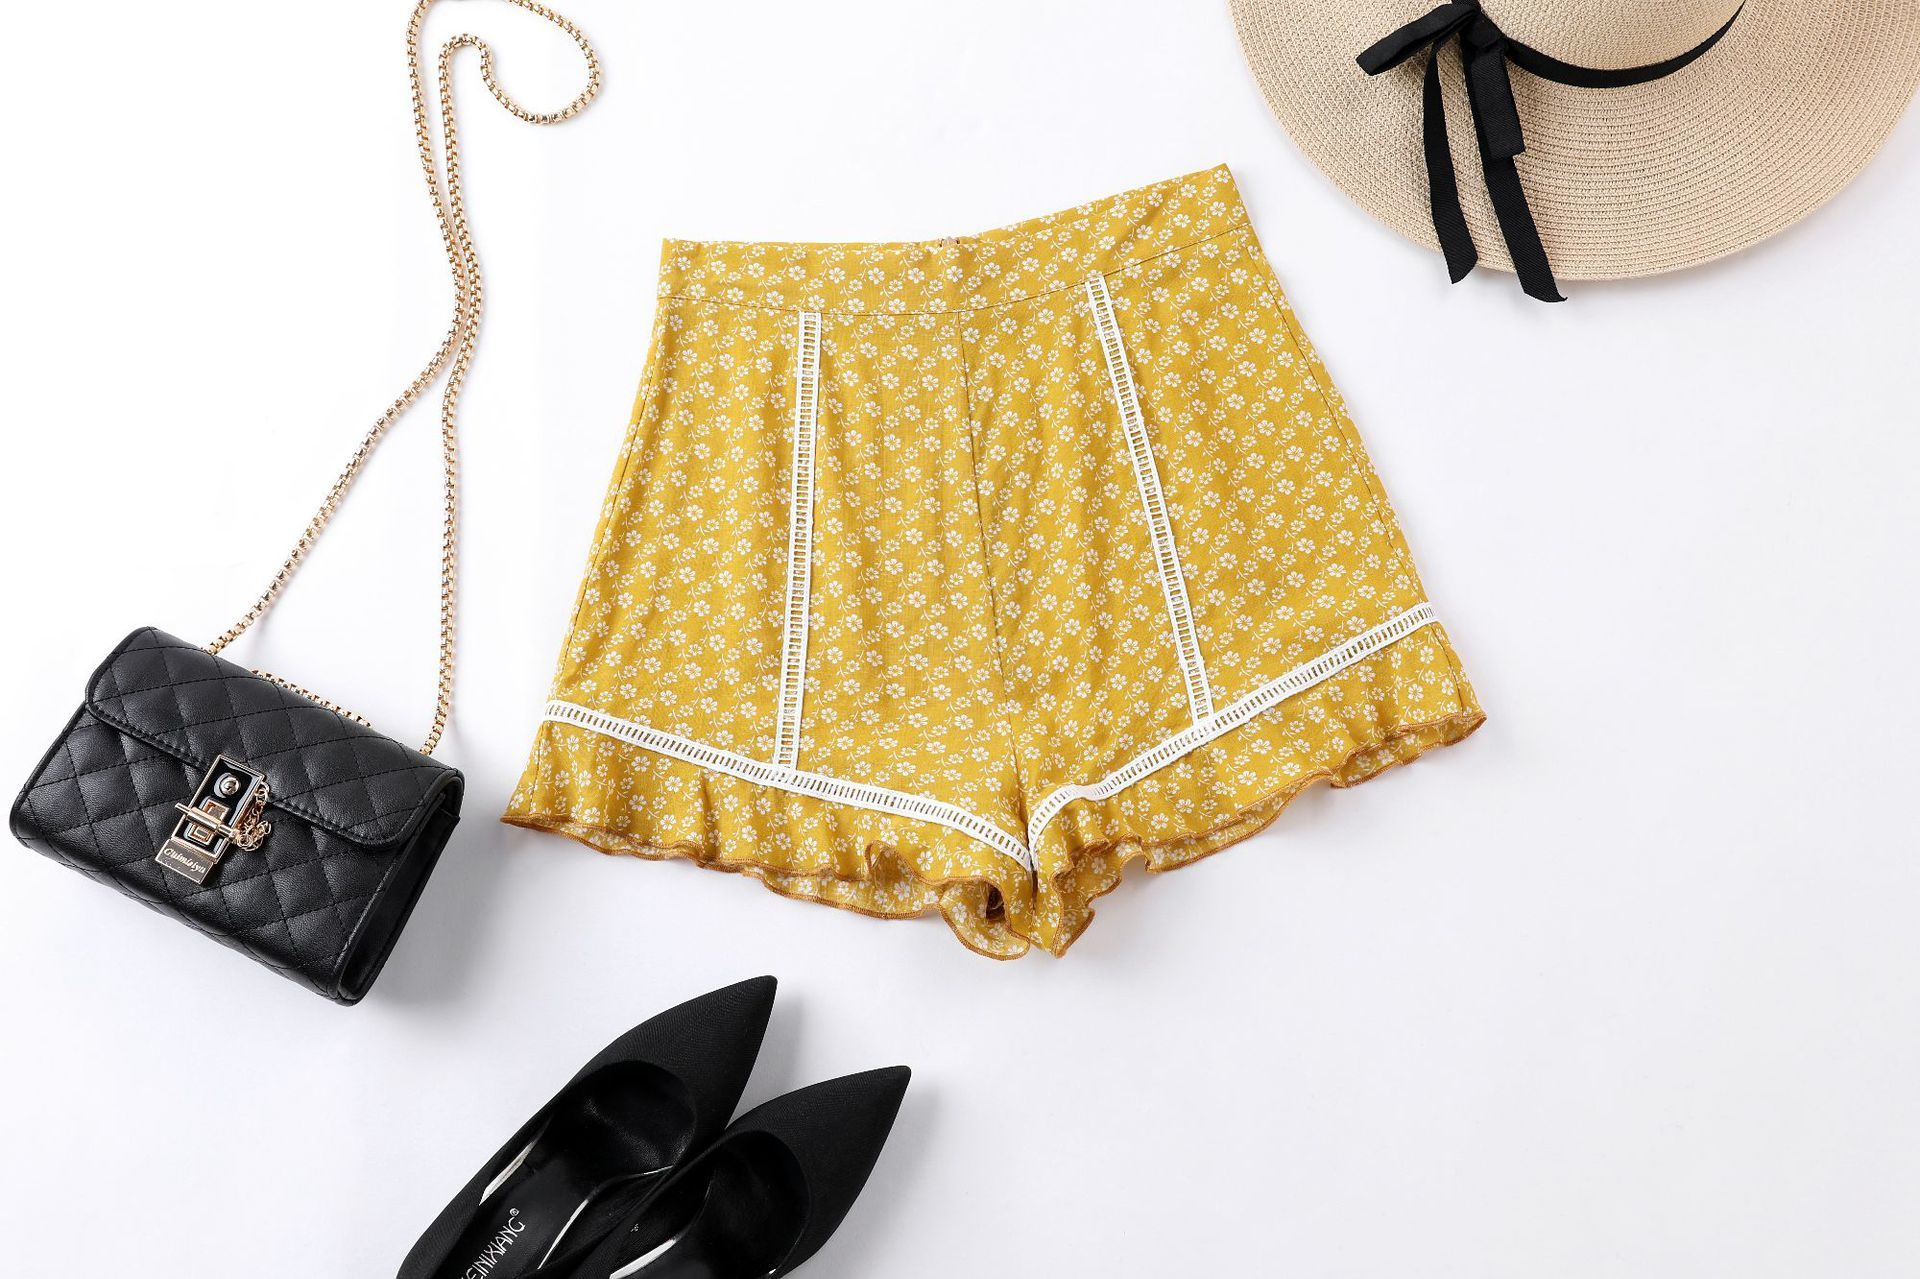 Summer High Waist Shorts Women Ruffles Casual Mini Short Yellow Red Print Beach Hot Shorts 2019 Ladies Sexy Shorts Mujer Clothes